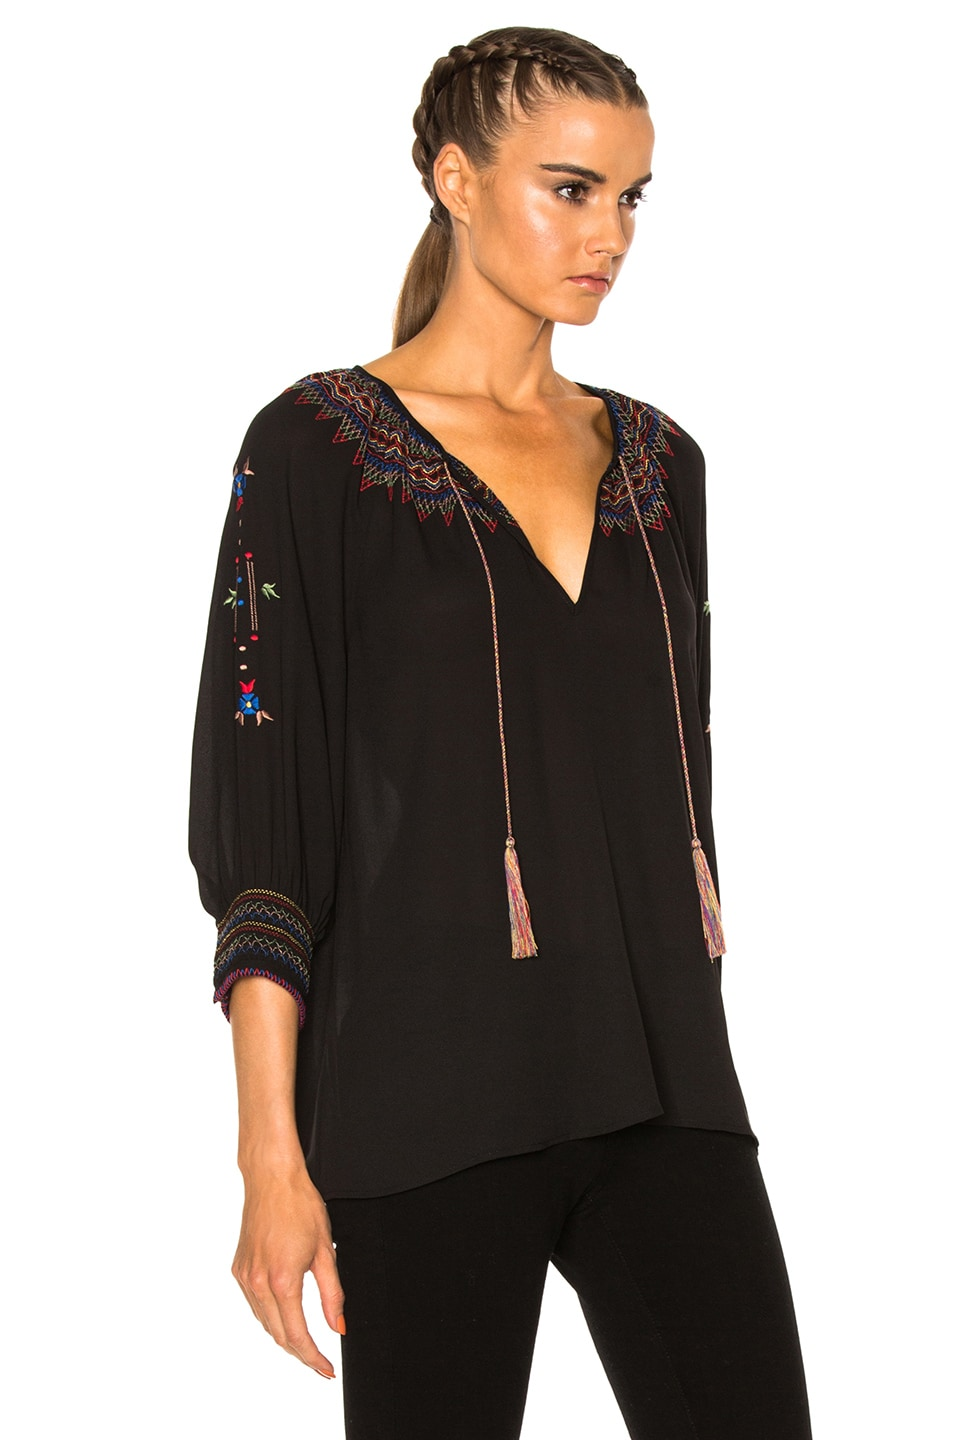 Image 3 of The Great Promenade Top in Black